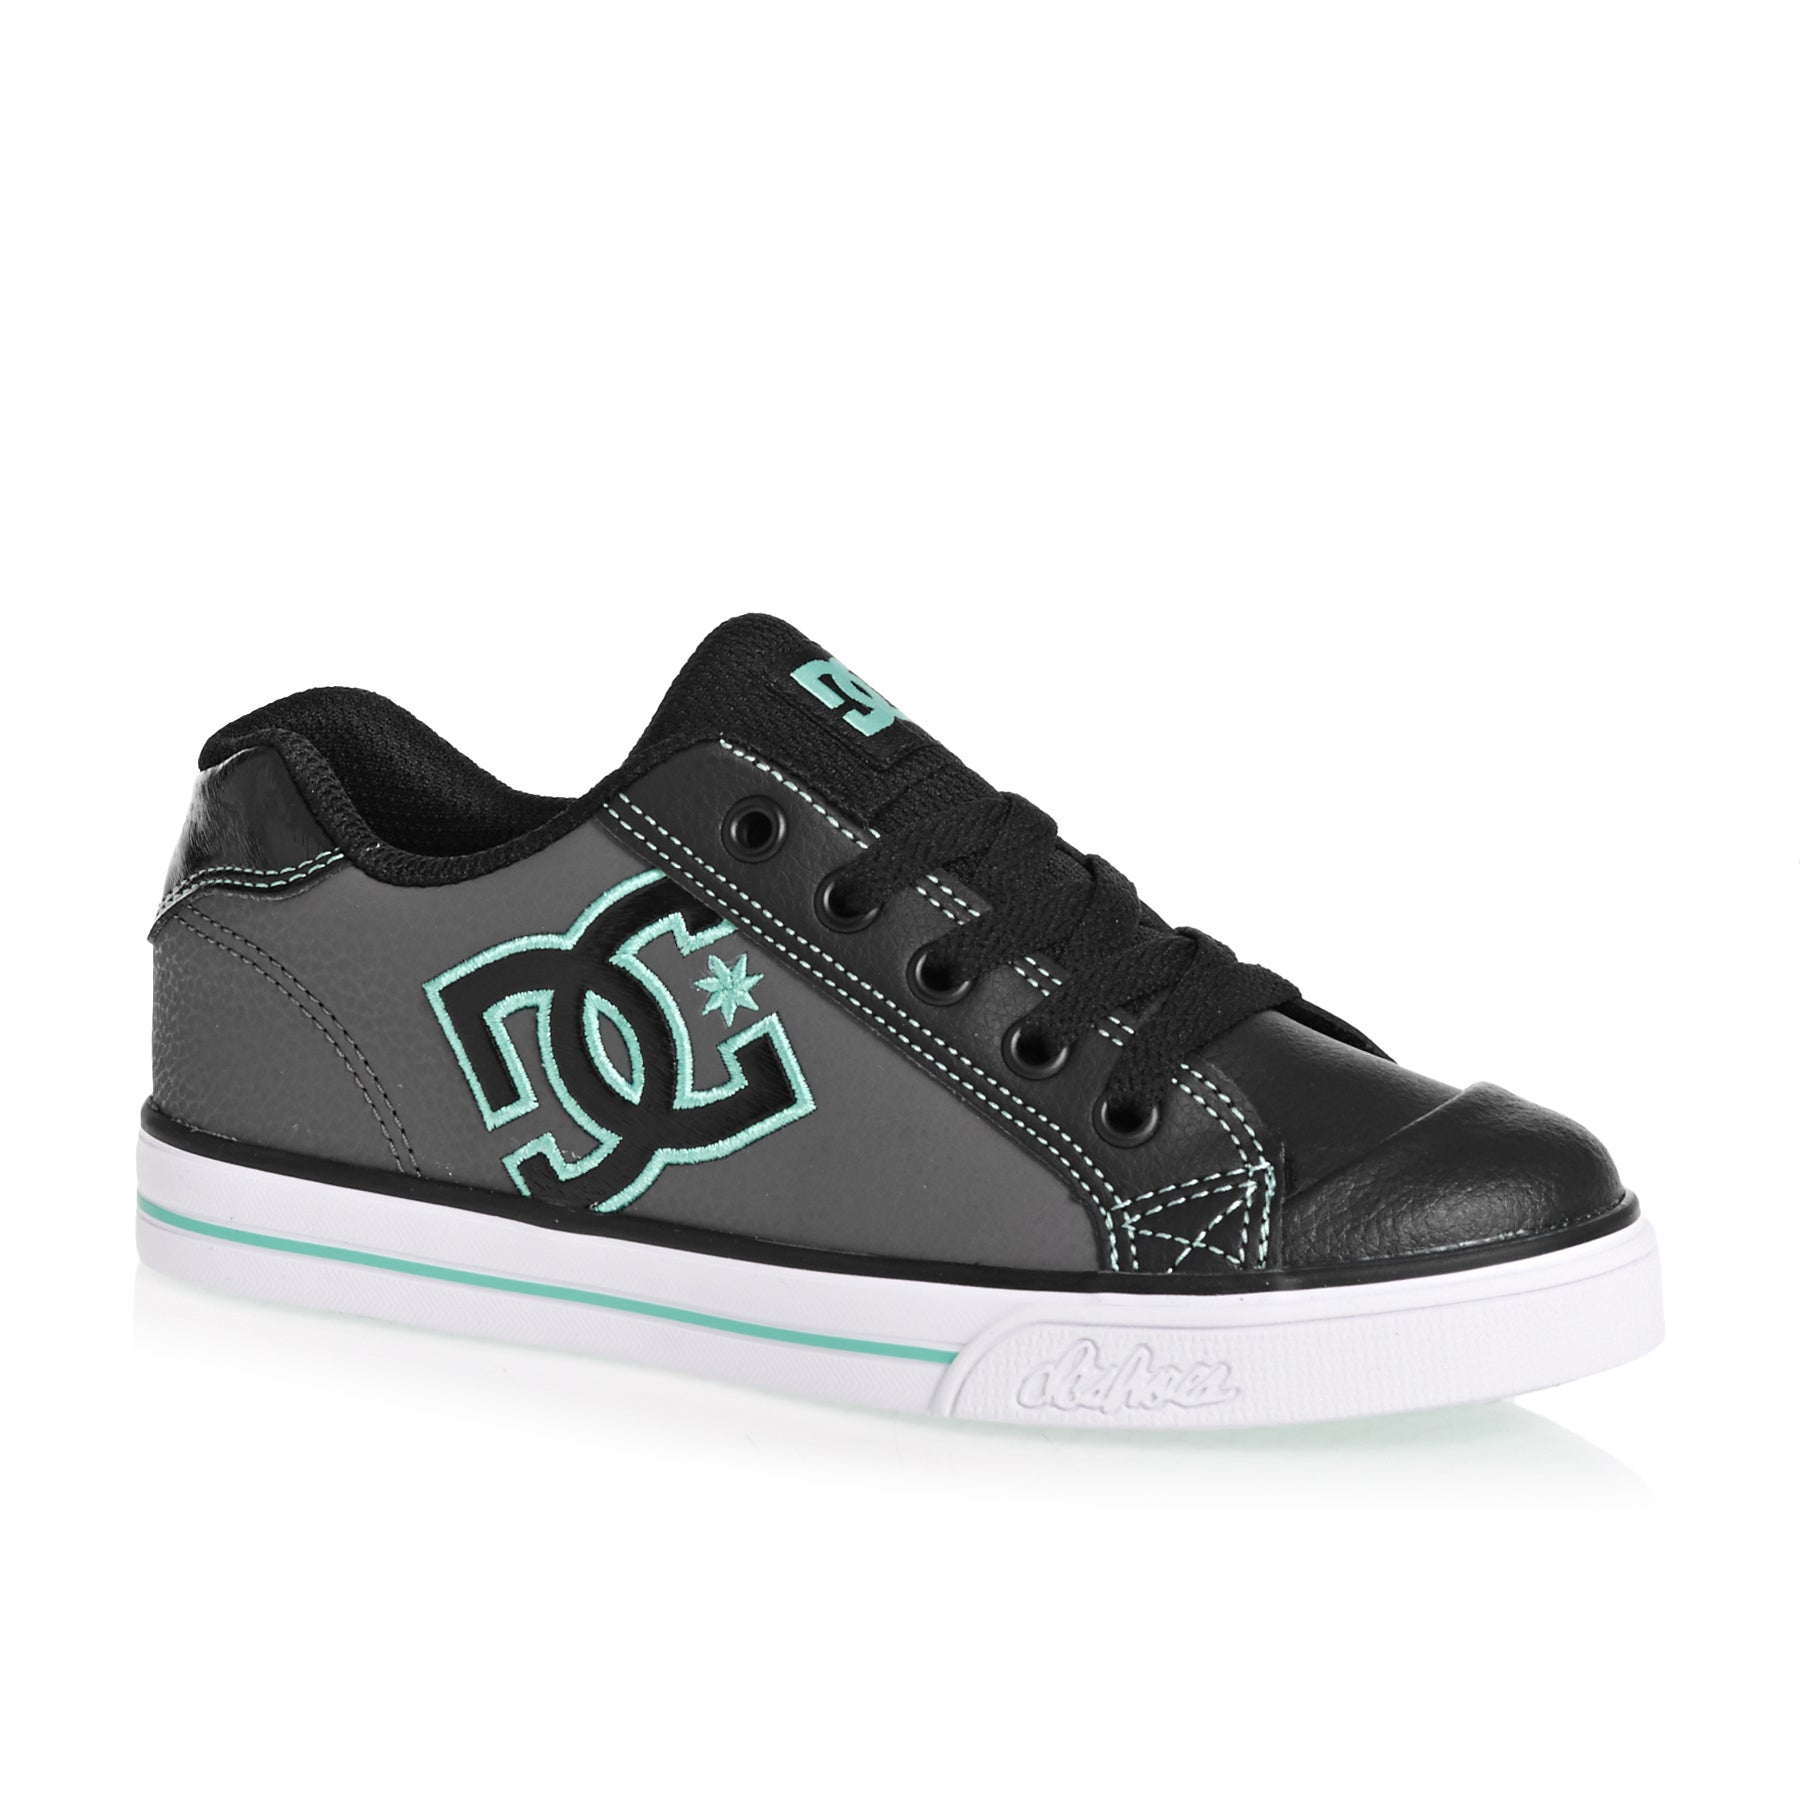 DC Chelsea Girls Shoes - Black Aqua